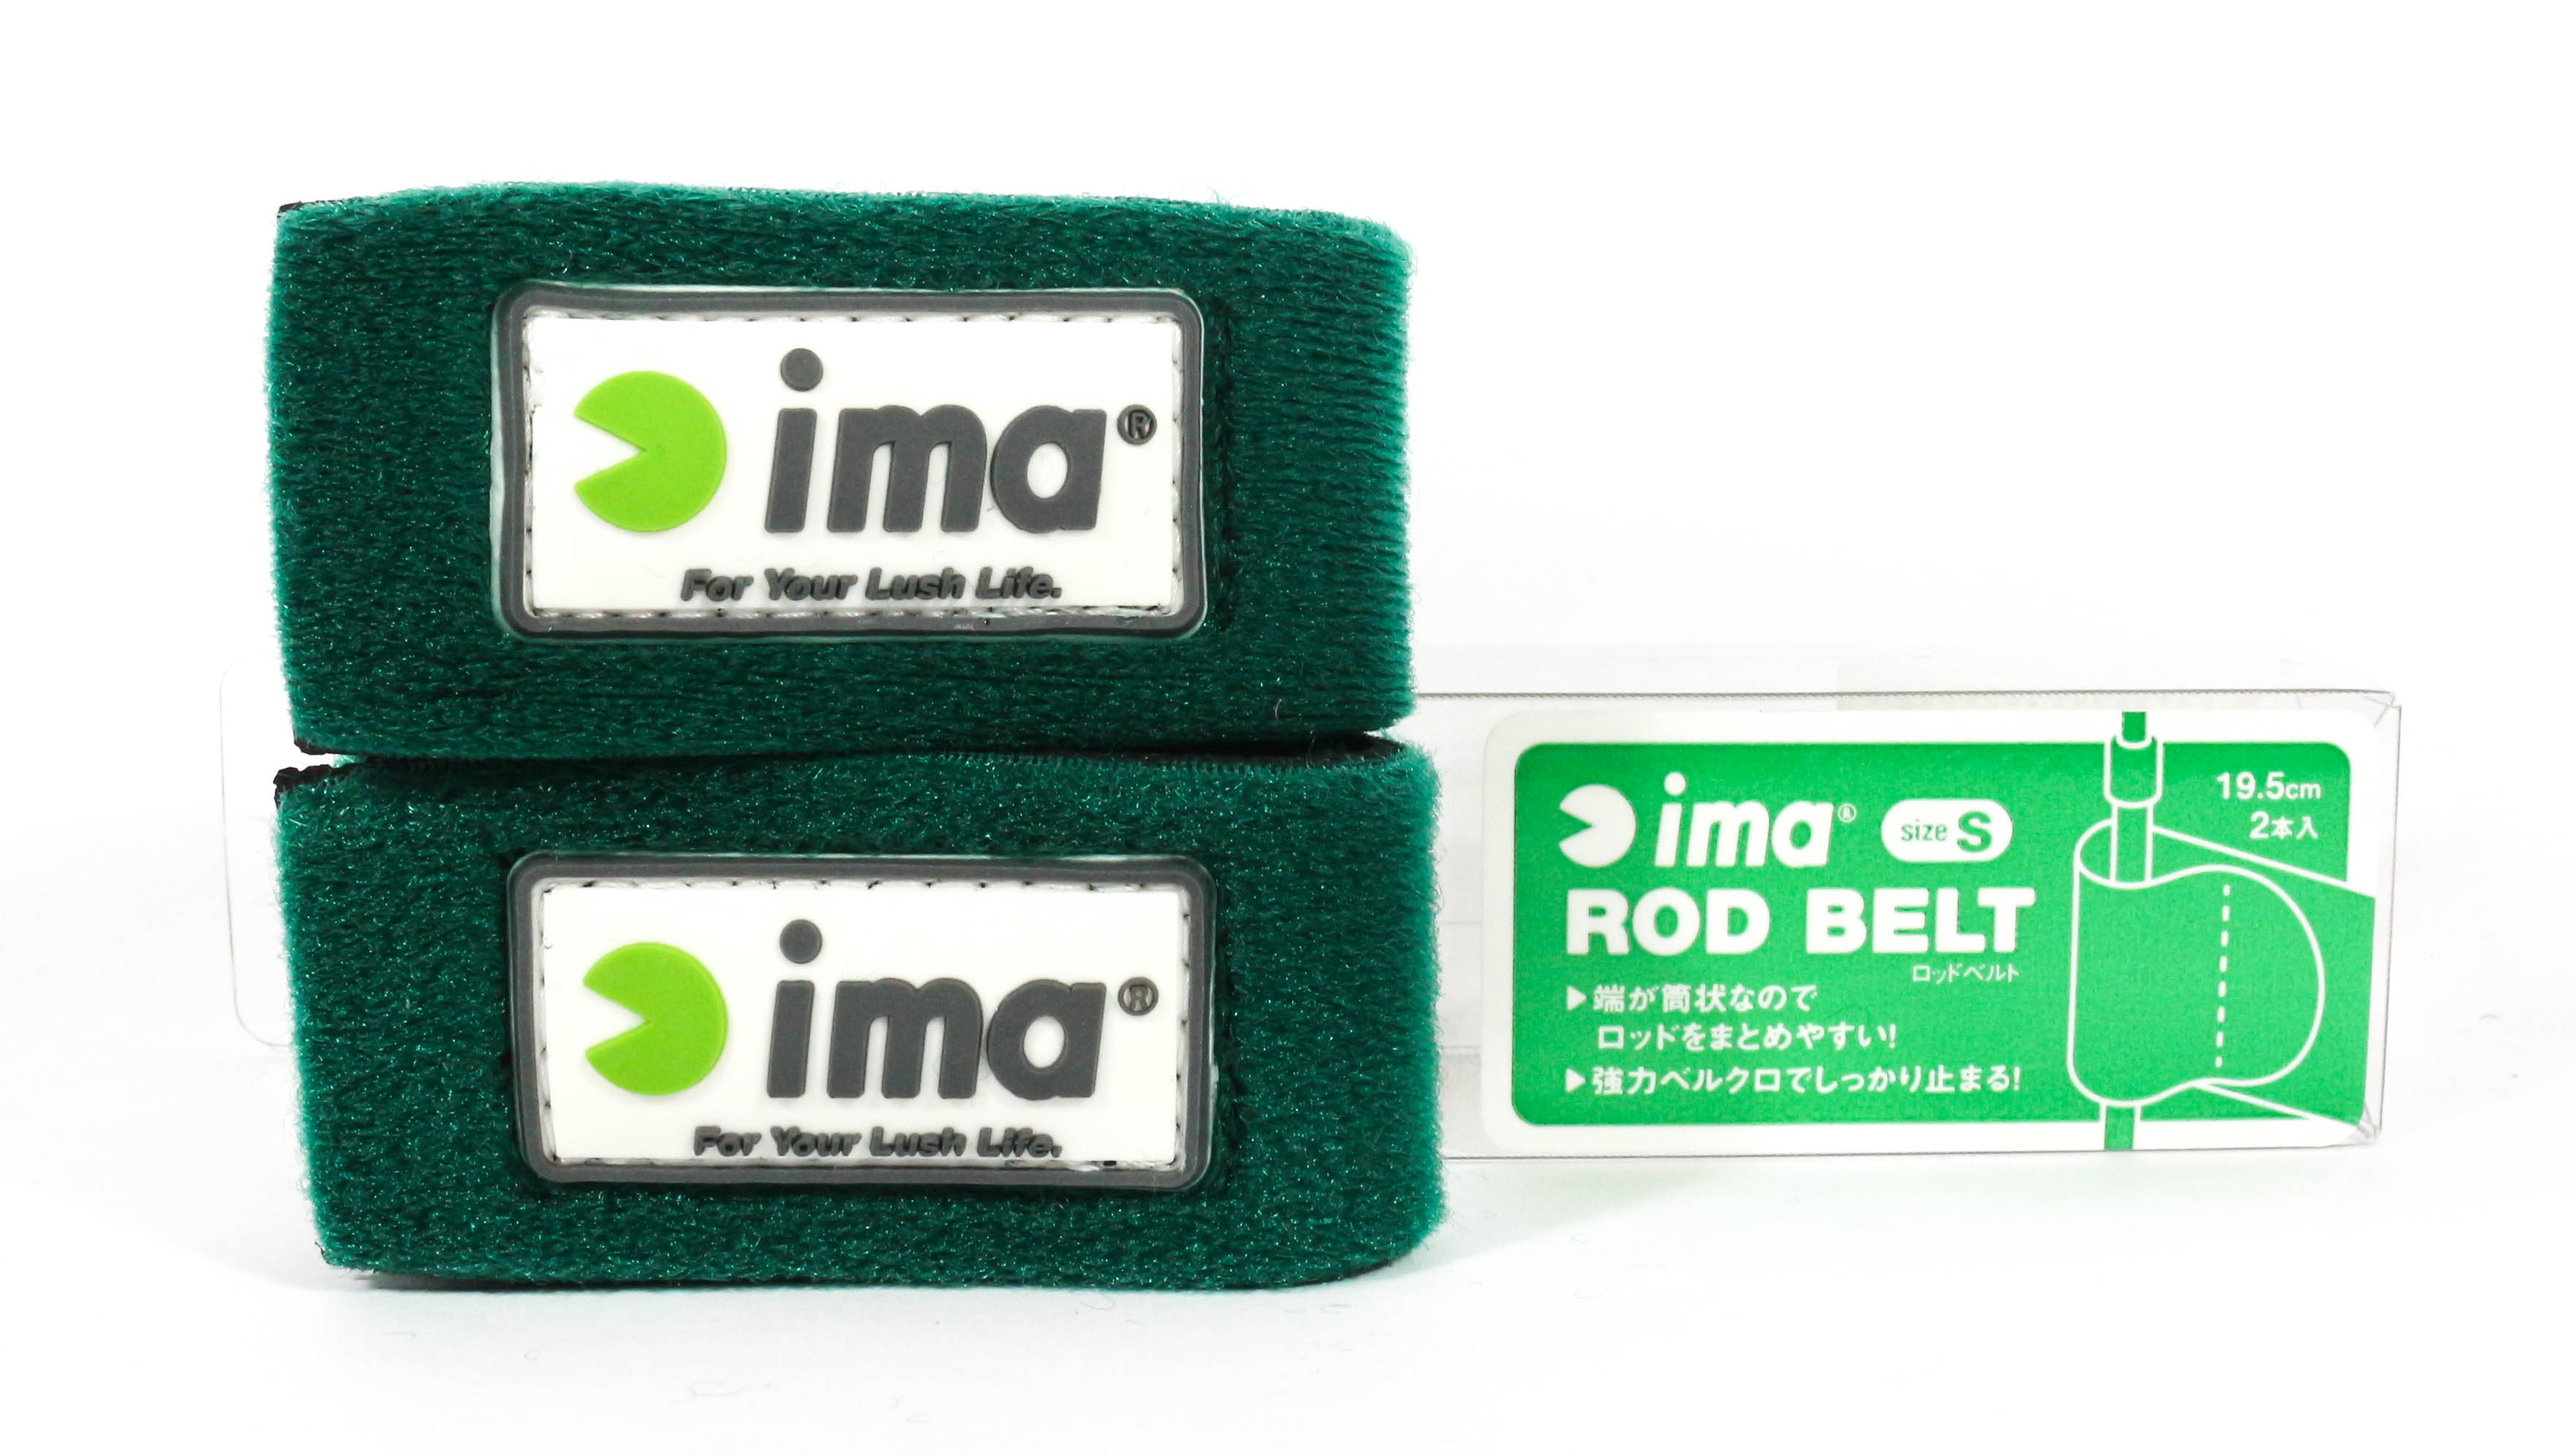 Sale Ima Rod Belt Strap Size S 2 Piece Pack Green (2546)